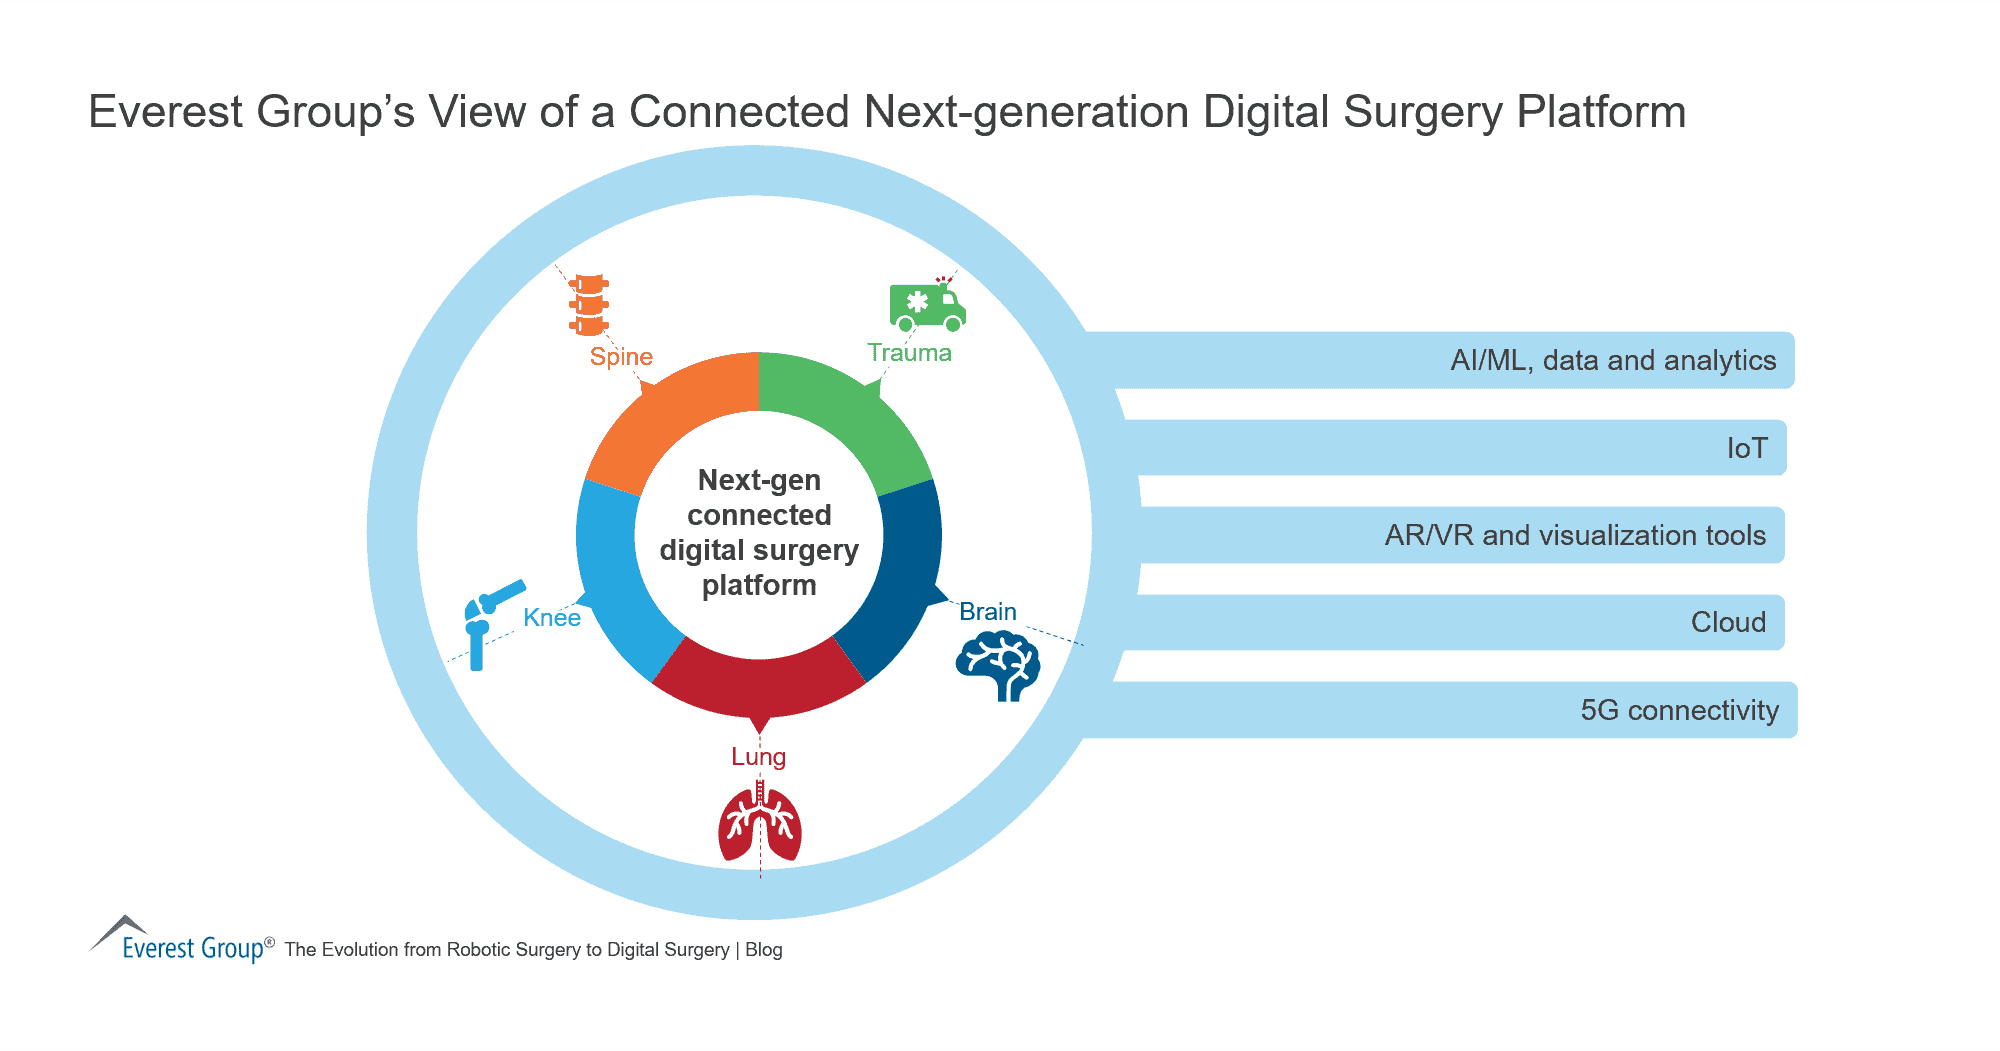 Everest Group's View of a Connected Next-generation Digital Surgery Platform